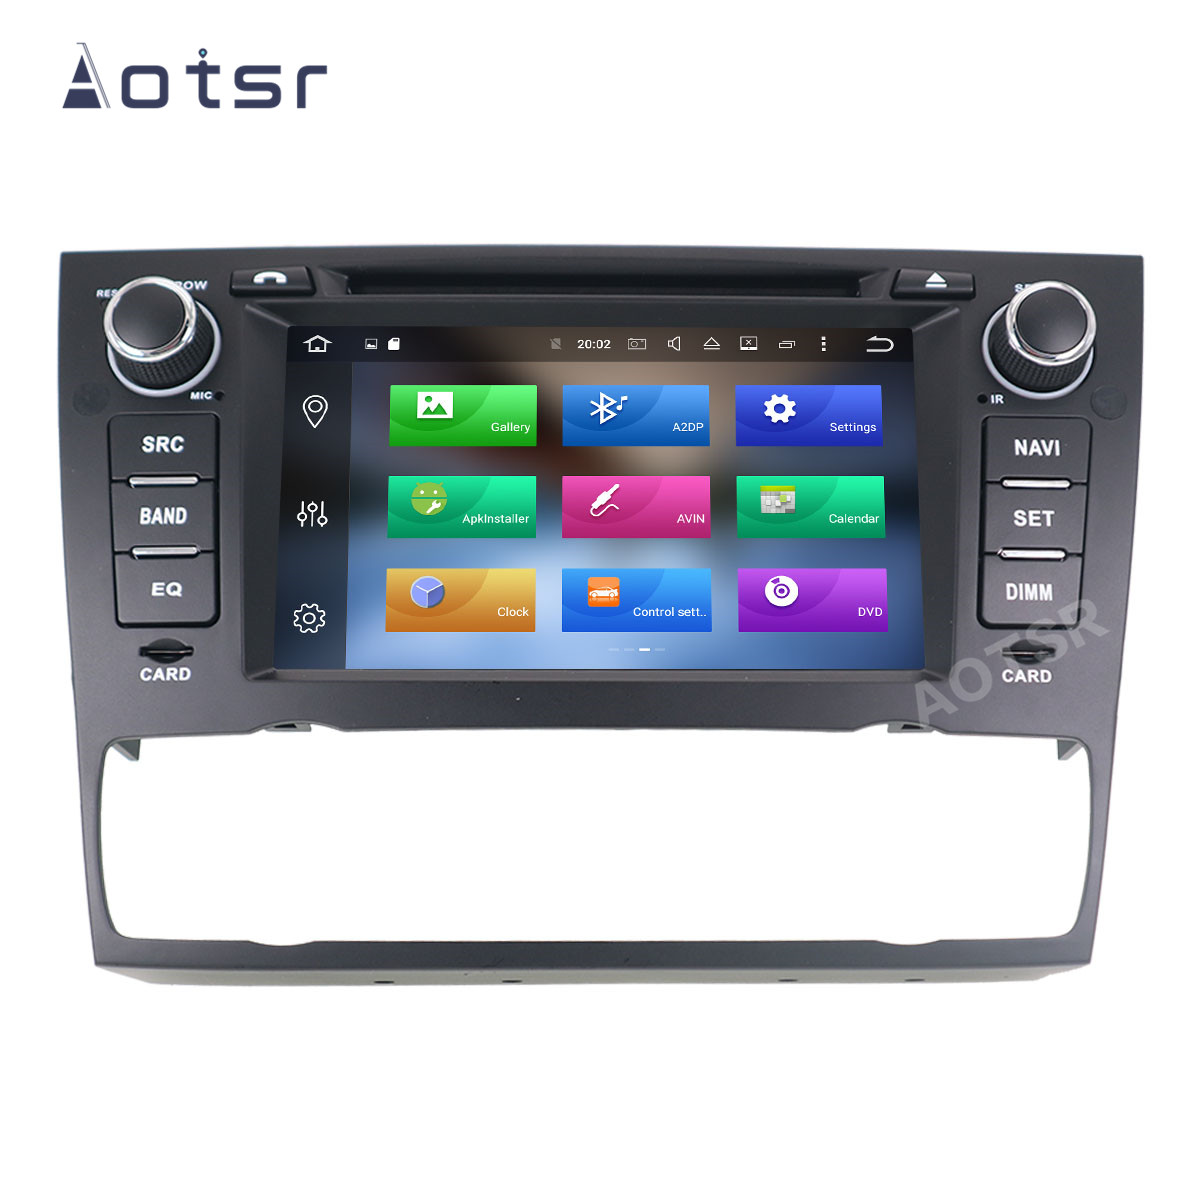 AOTSR 2 Din Android 10 Car Radio For BMW E90 E91 E92 E93 3 Series Multimedia Player Auto GPS Navigation DSP AutoRadio IPS Unit image